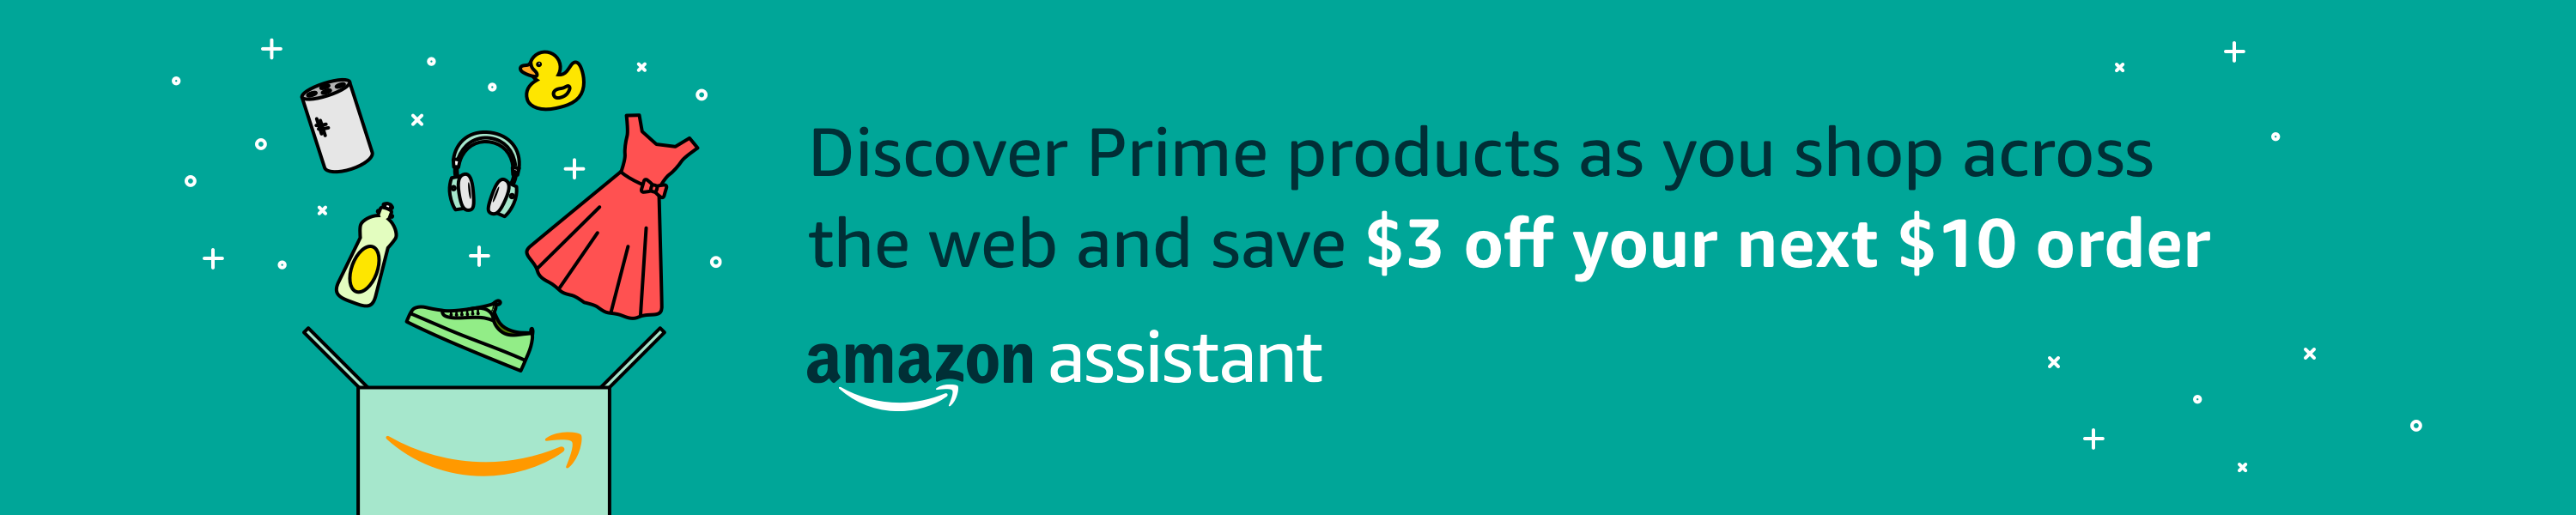 Shop with Amazon Assistant and get $3 off your next $10 purchase